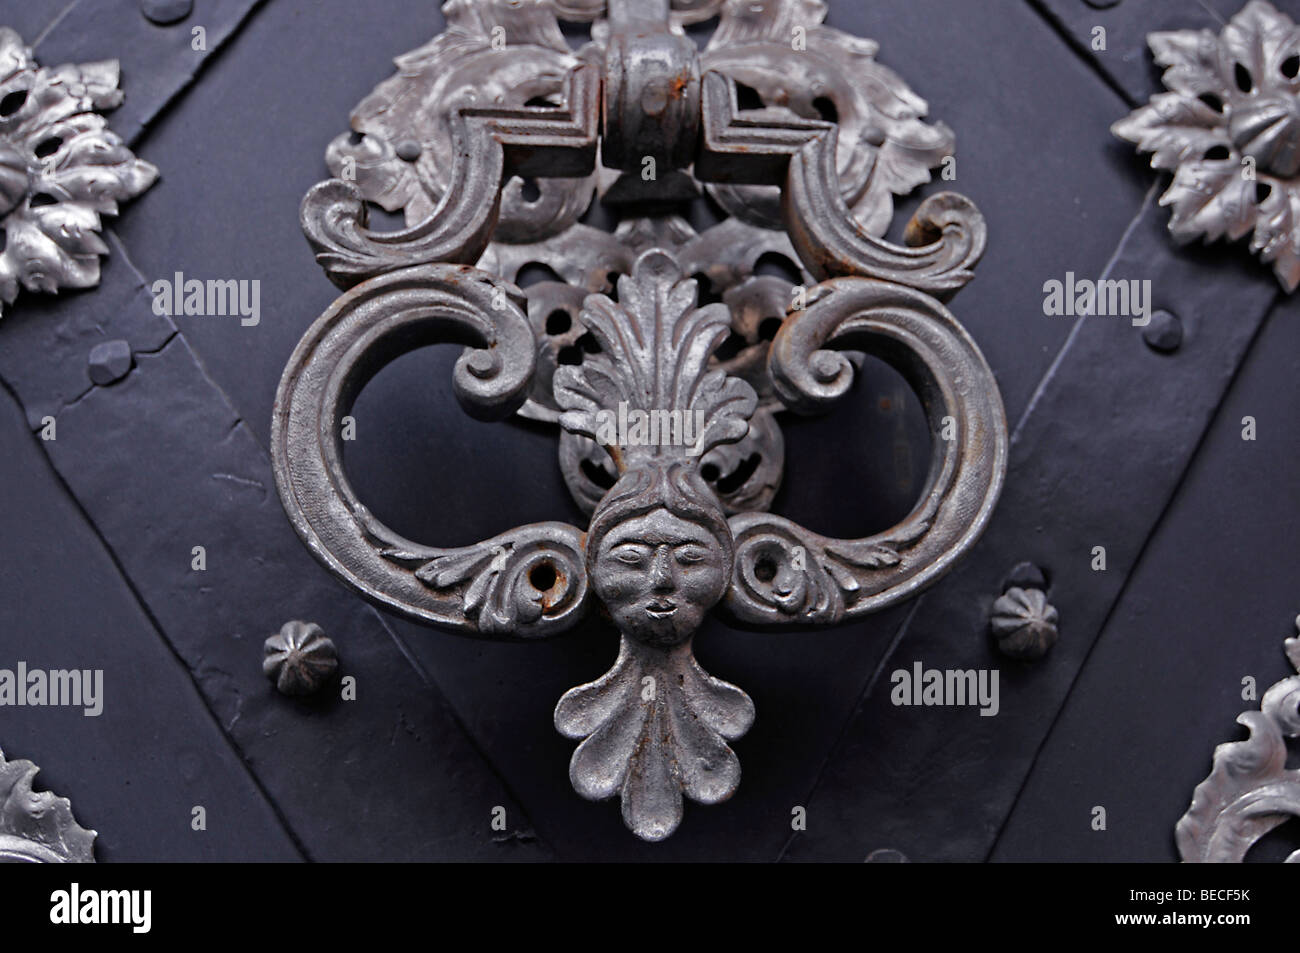 Door detail of the Italian embassy, Old town, UNESCO World Heritage Site, Prague, Czech Republic, Europe Stock Photo